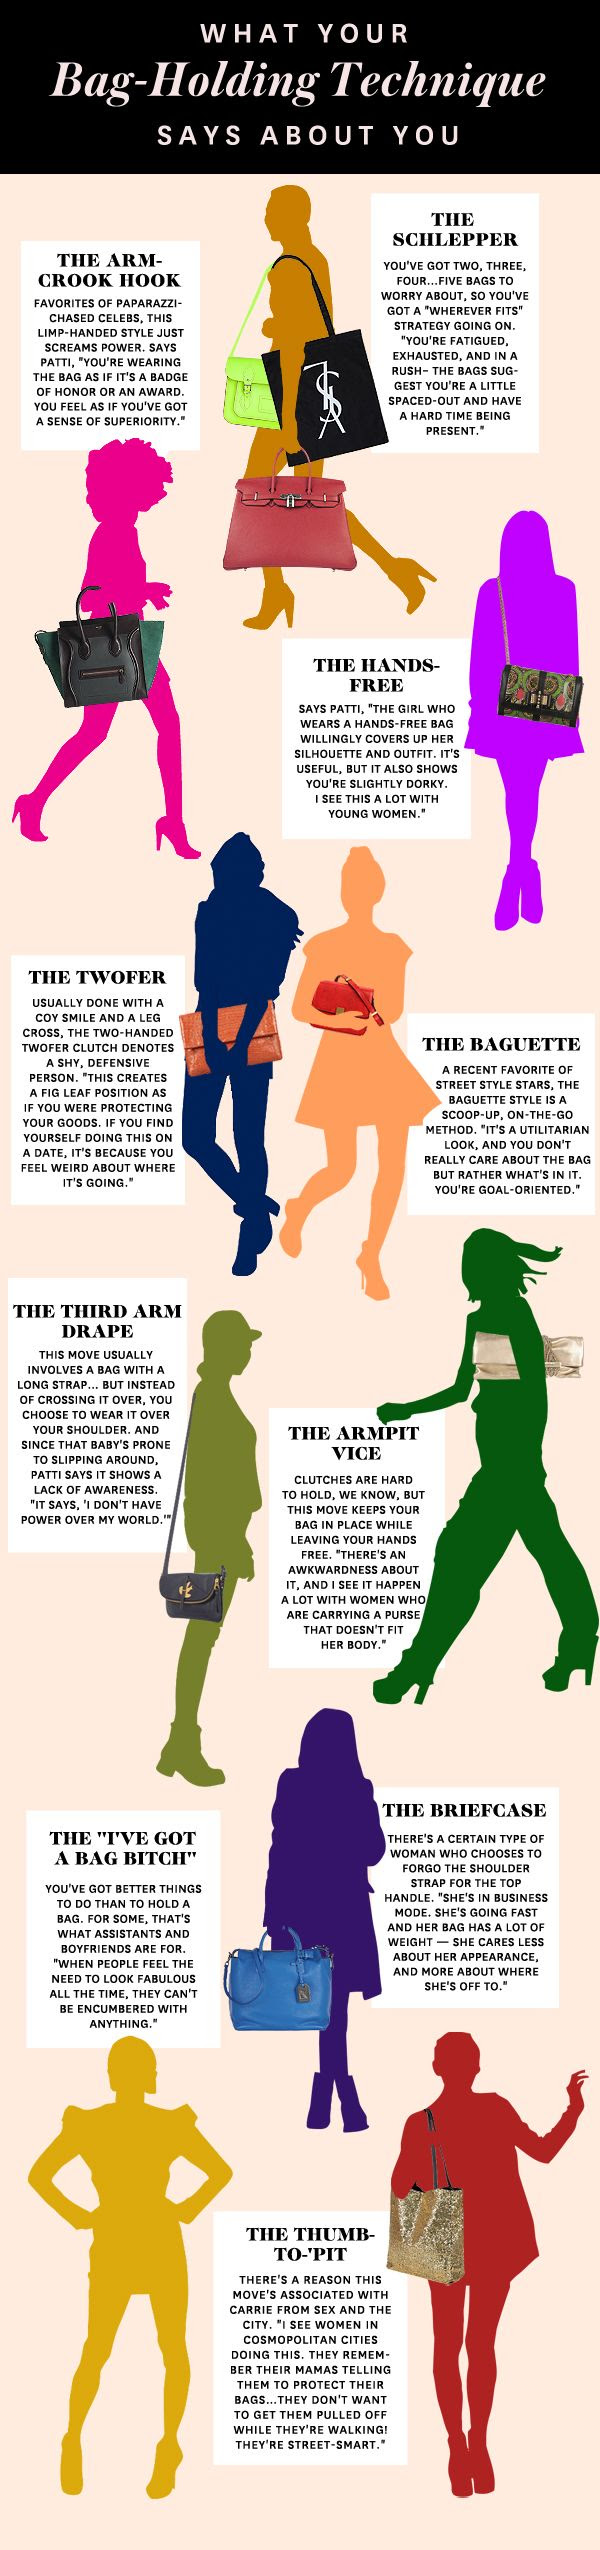 What Your Bag-Holding Style Says About You...I go back and forth from to 'The Arm Crook Hook' to 'Thumb-To-Pit.'